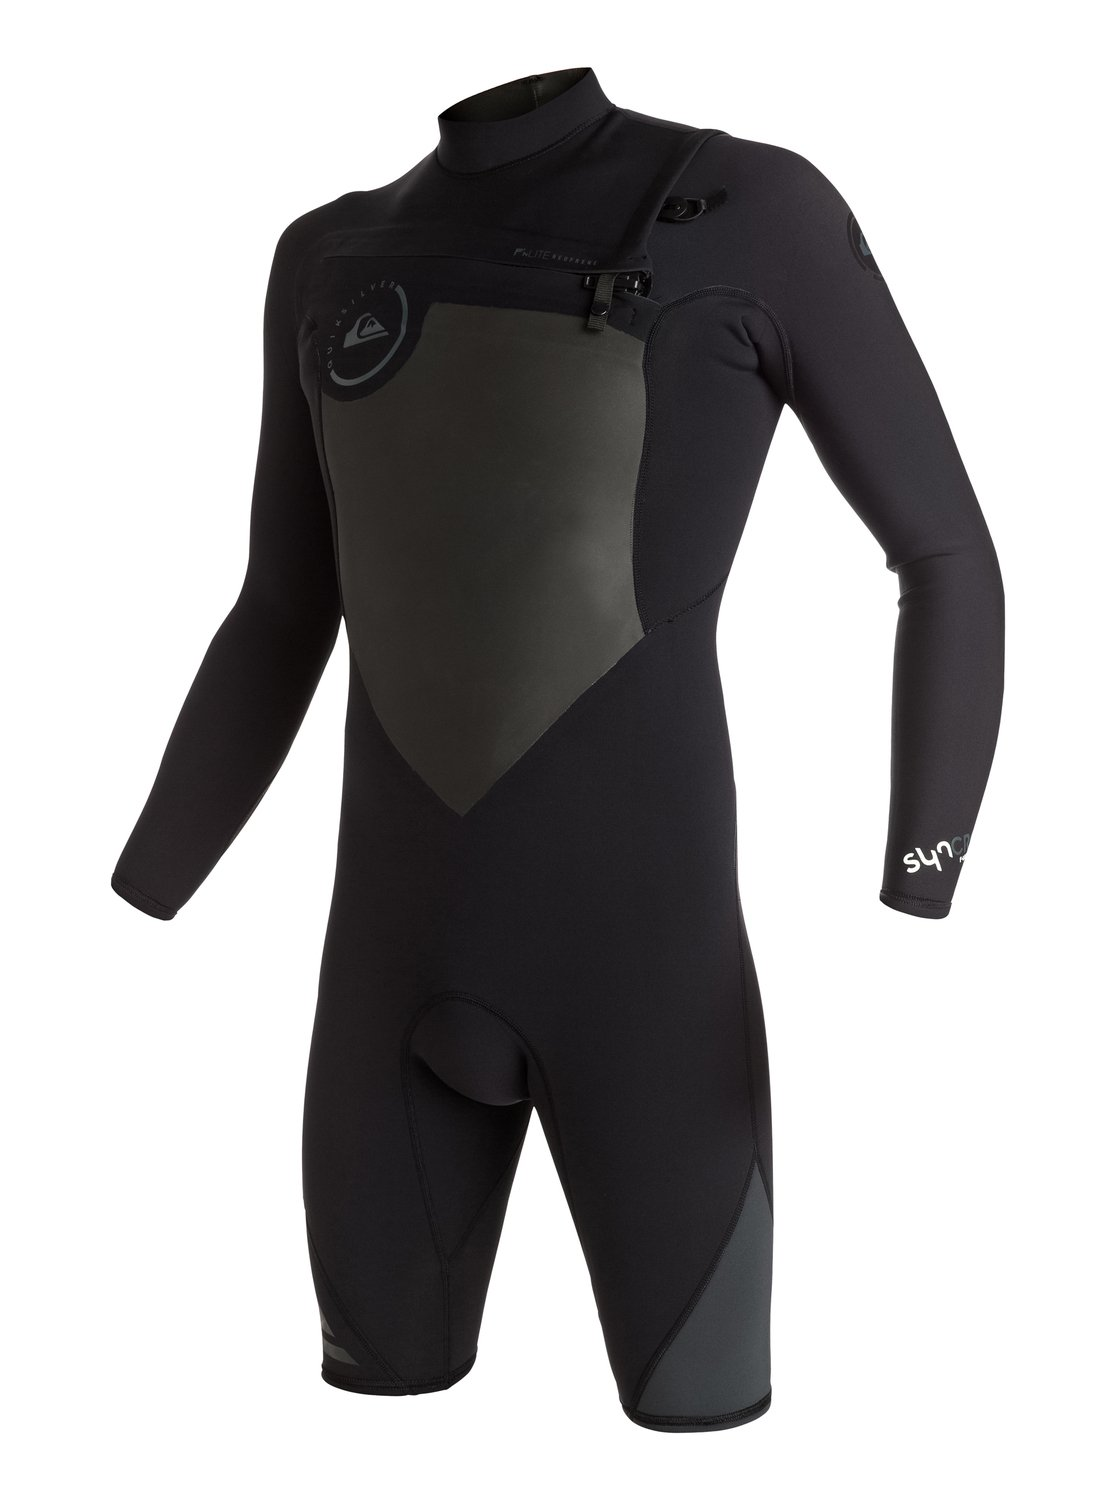 Syncro 2/2mm - Chest Zip Long Sleeve SpringsuitThe long sleeve Syncro 2/2mm wetsuit packs F'N lite neoprene for lightness, Vapor Stretch Mesh for warmth and protection from wind and water, and GBS seams for increased flexibility, waterproofing and durability. Colour blocking on arms and shoulders means this 2mm springsuit looks as good as it surfs.<br>